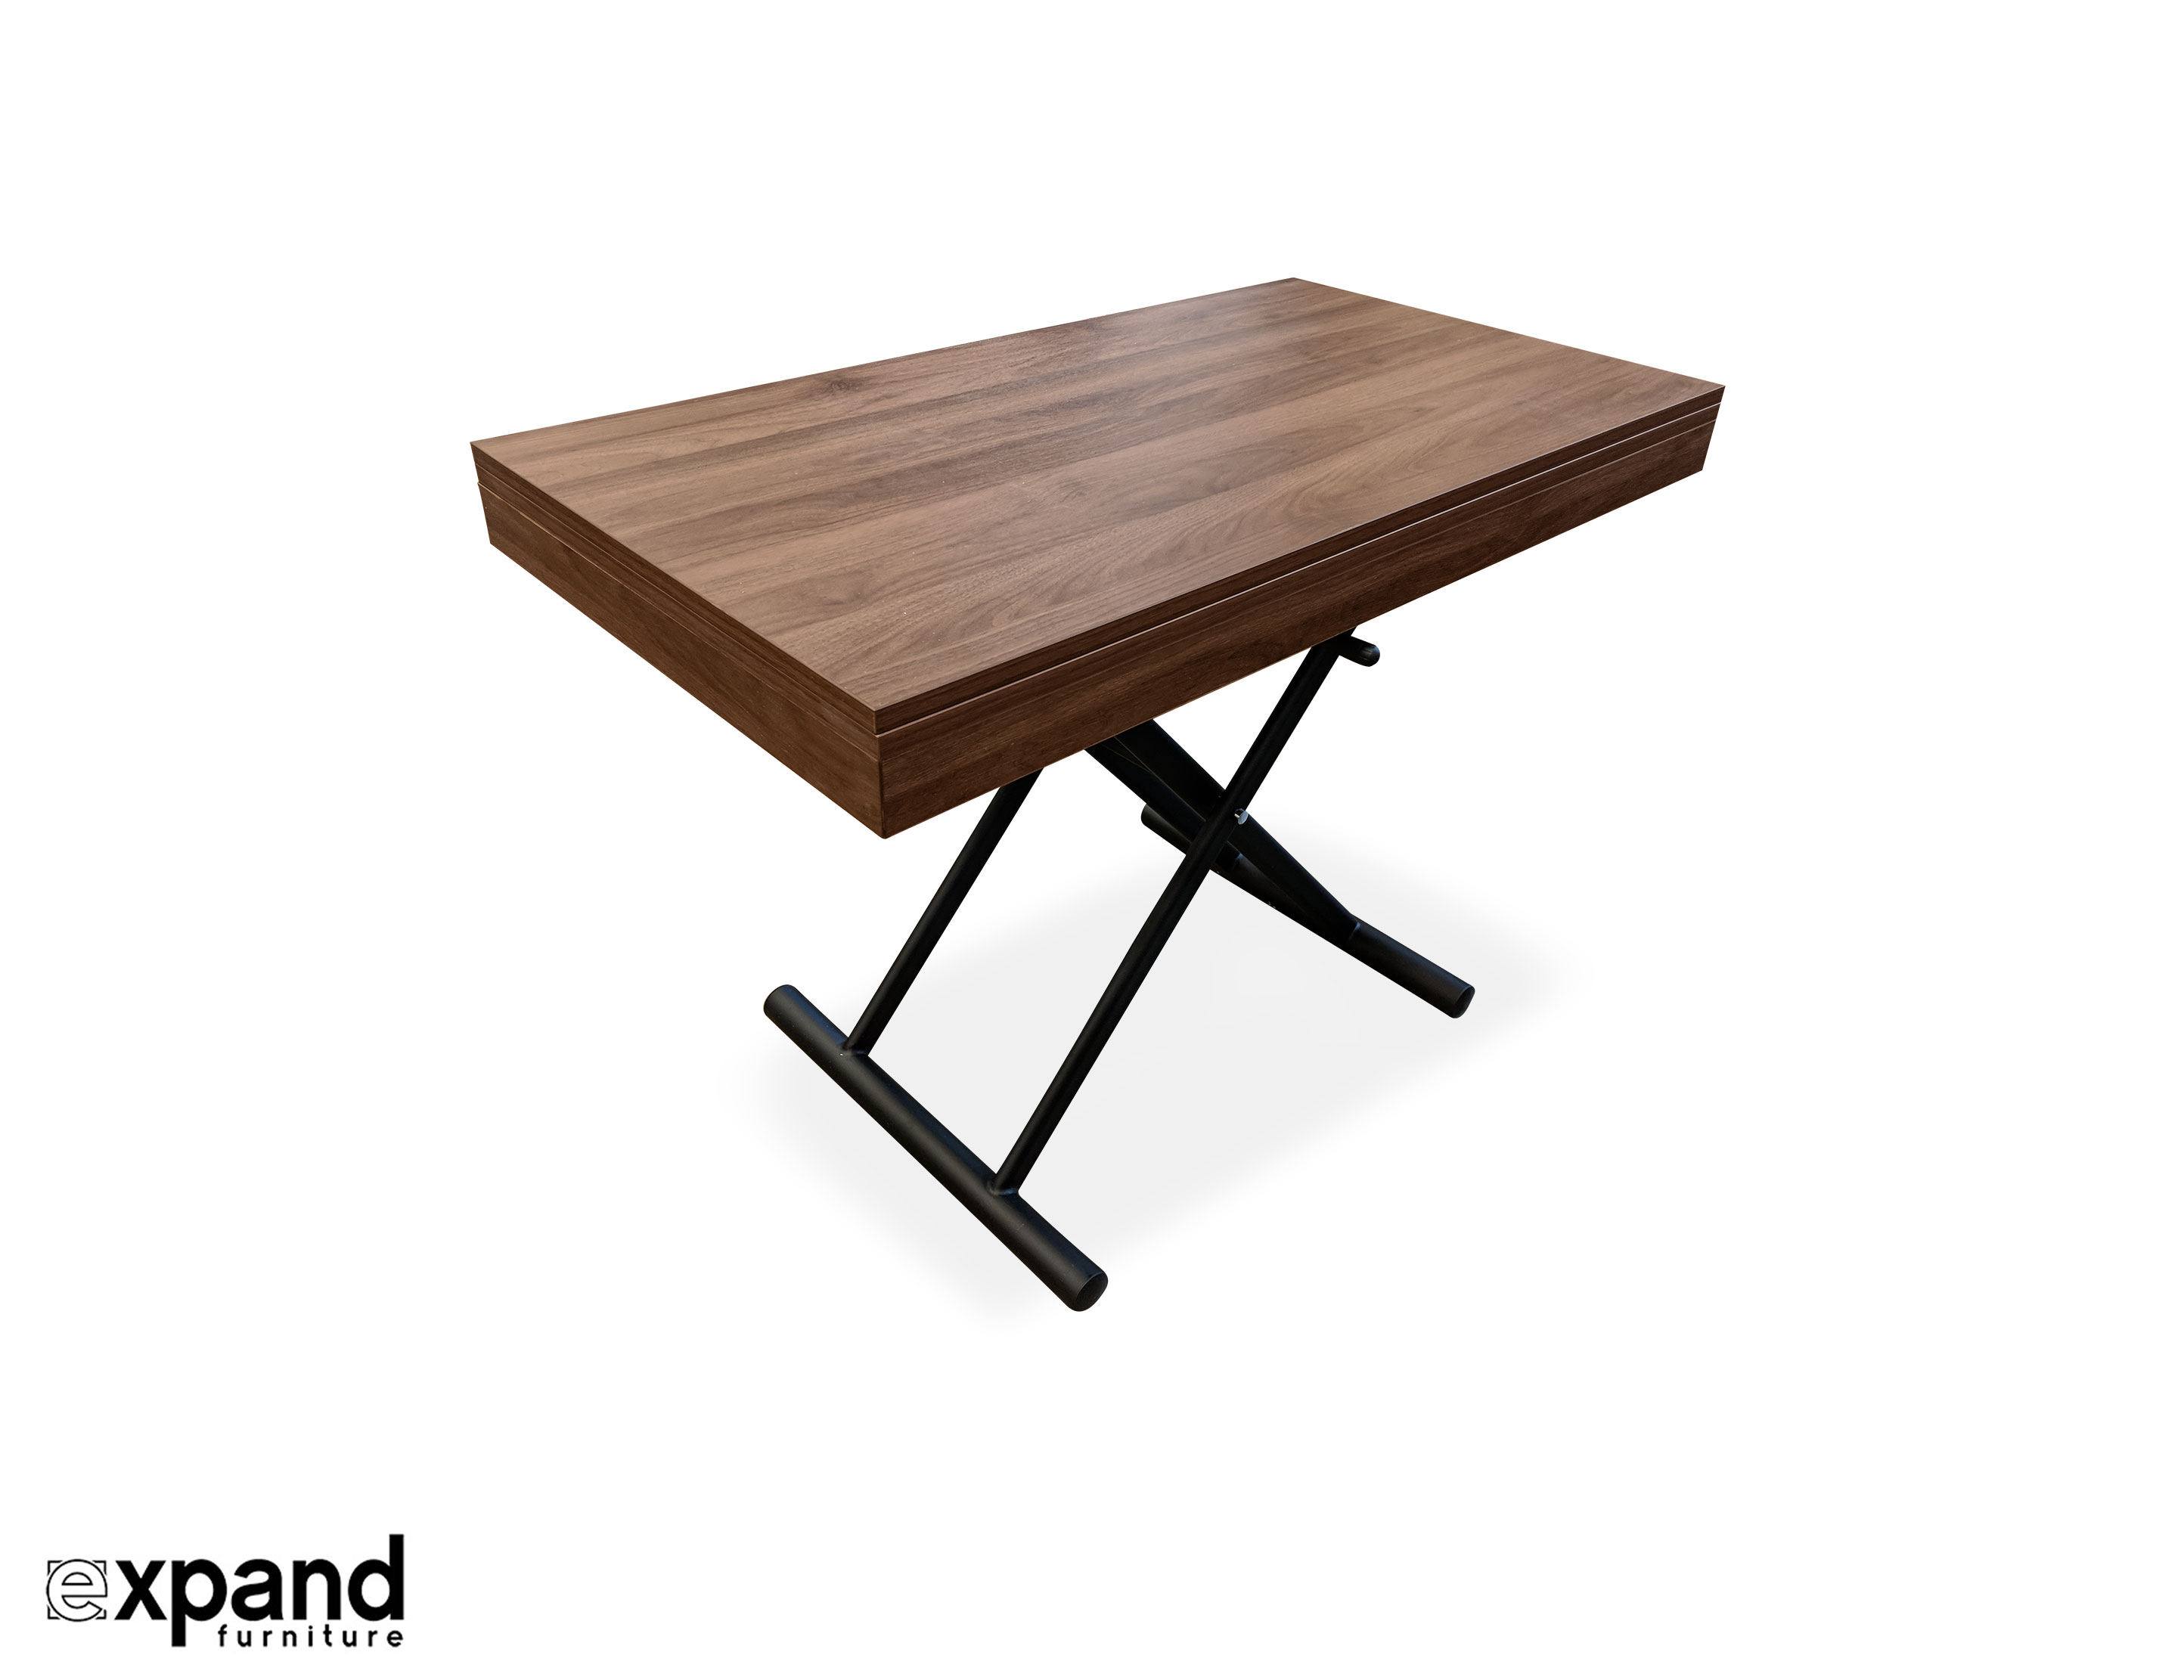 Alzare Small Transforming Coffee Table Expand Furniture Folding intended for sizing 2888 X 2222